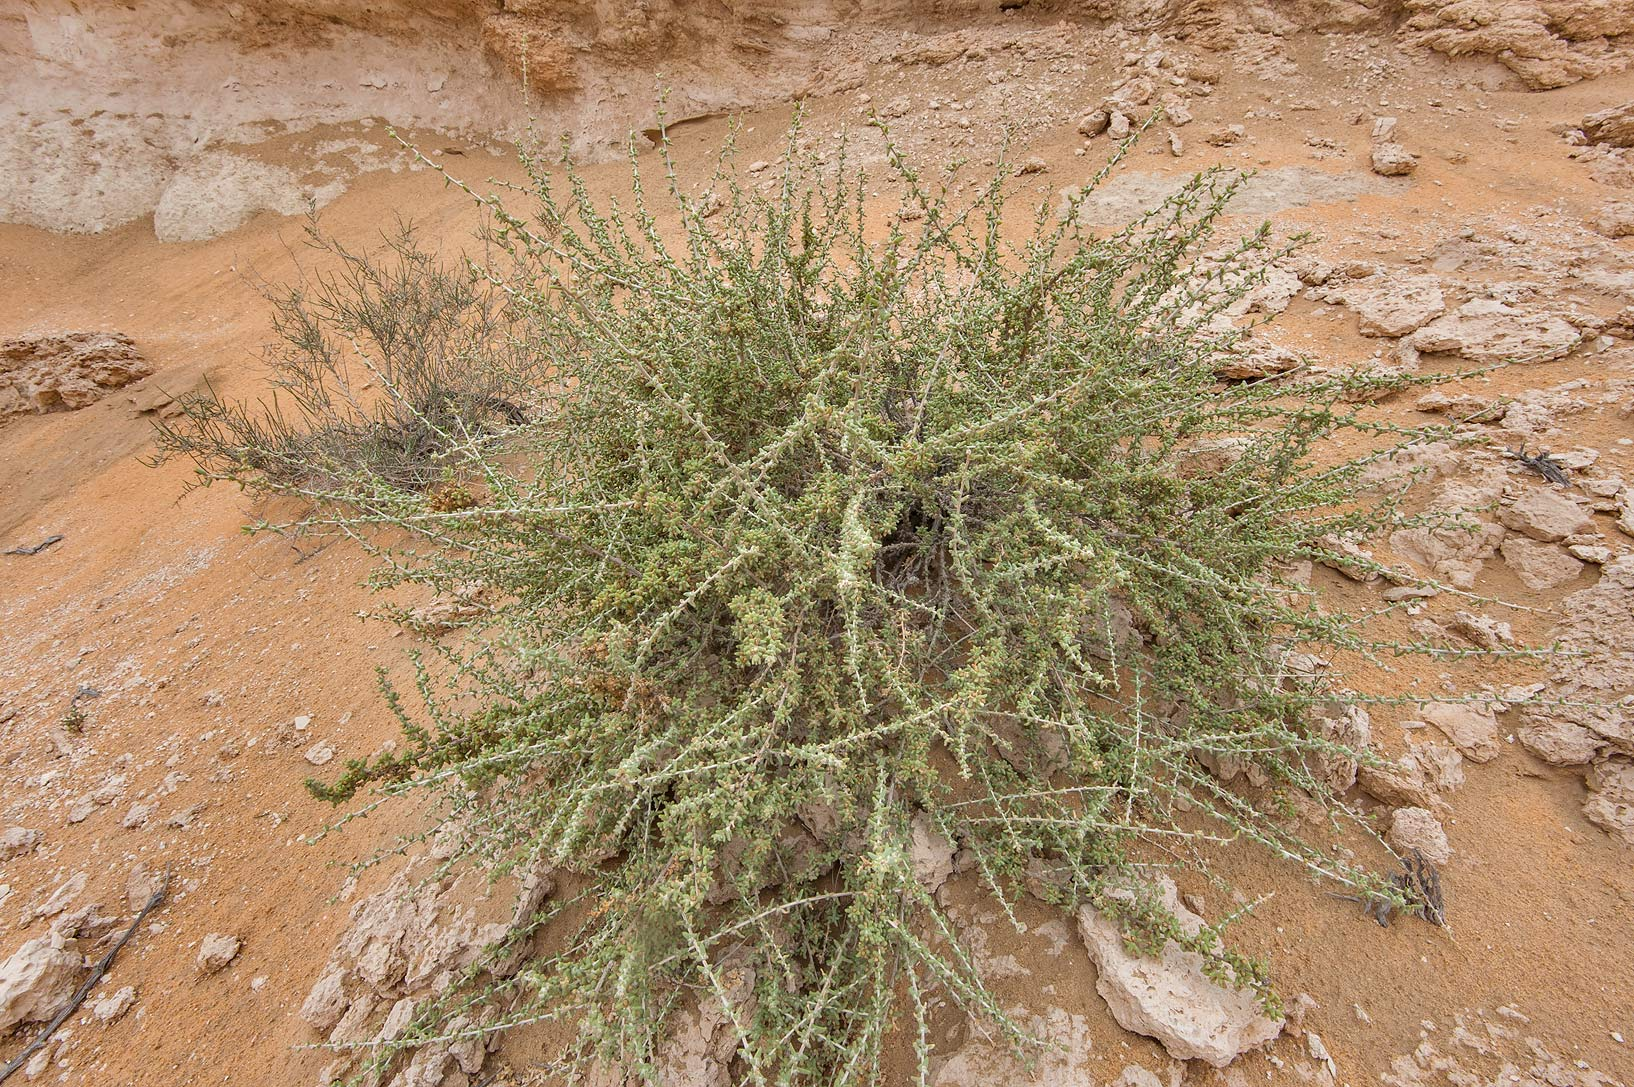 Grey bush of Traganum nudatum (local name dumran...Reserve near Abu Samra. Southern Qatar